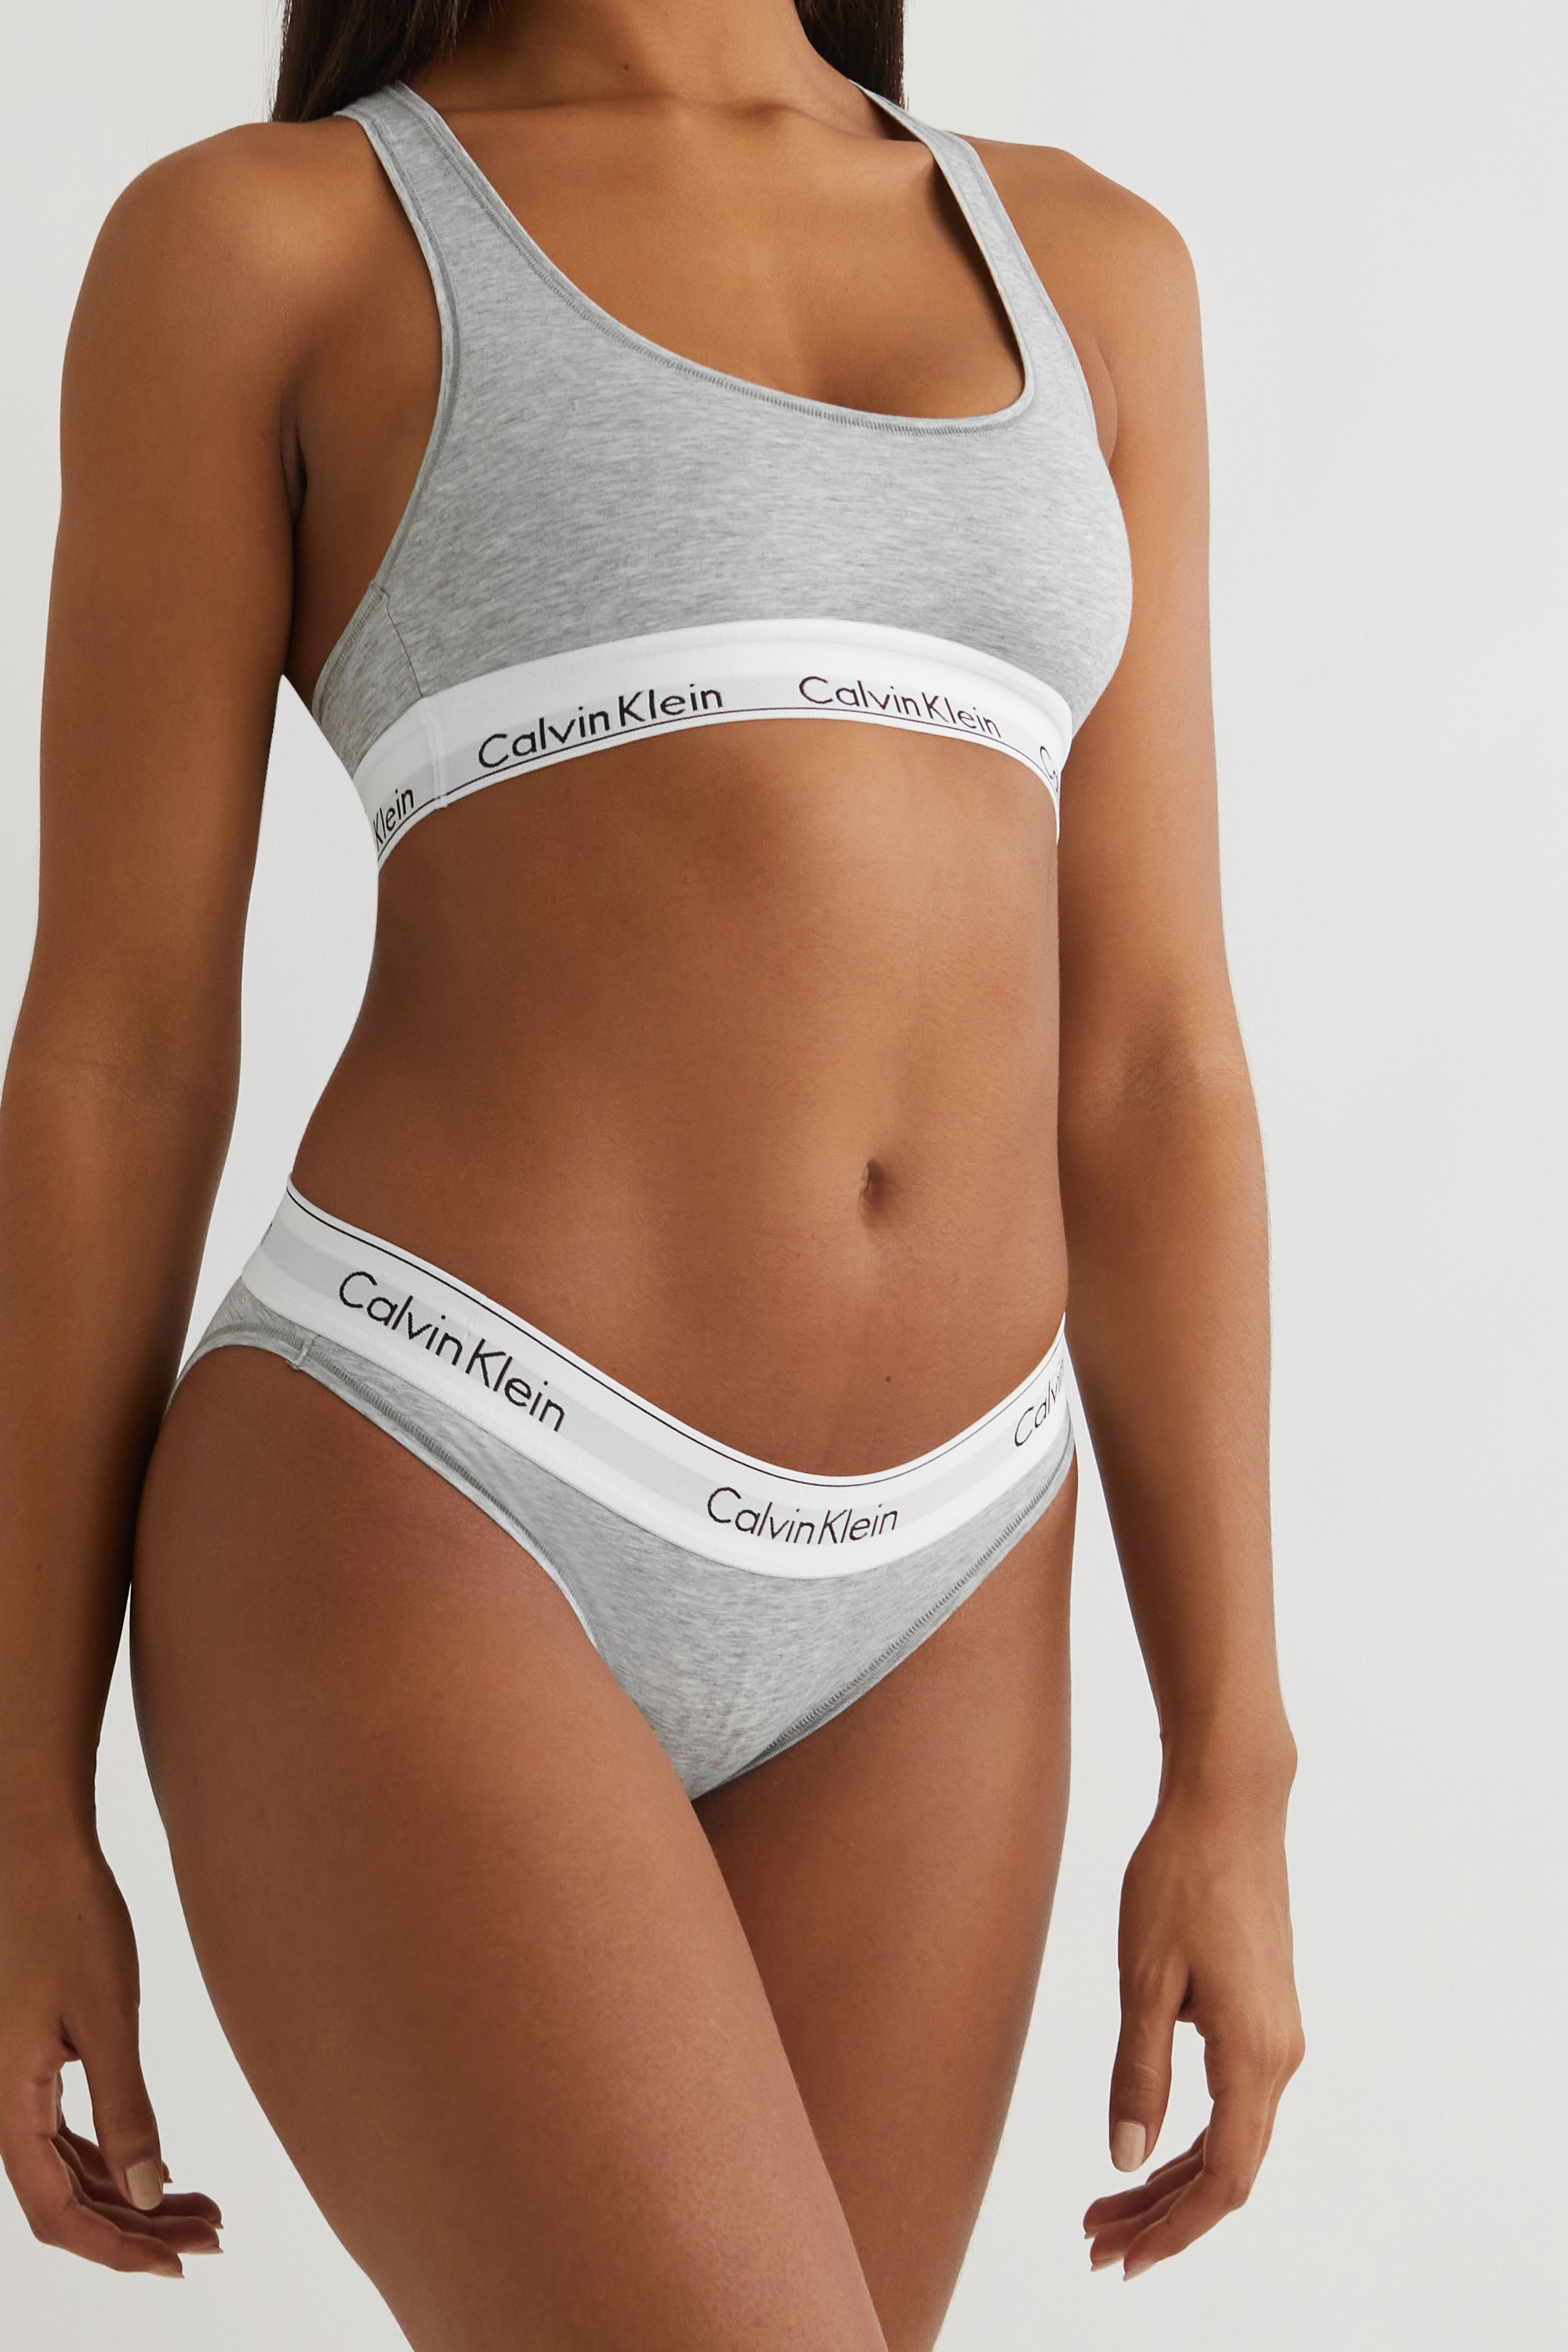 CALVIN KLEIN Modern Cotton stretch cotton-blend briefs